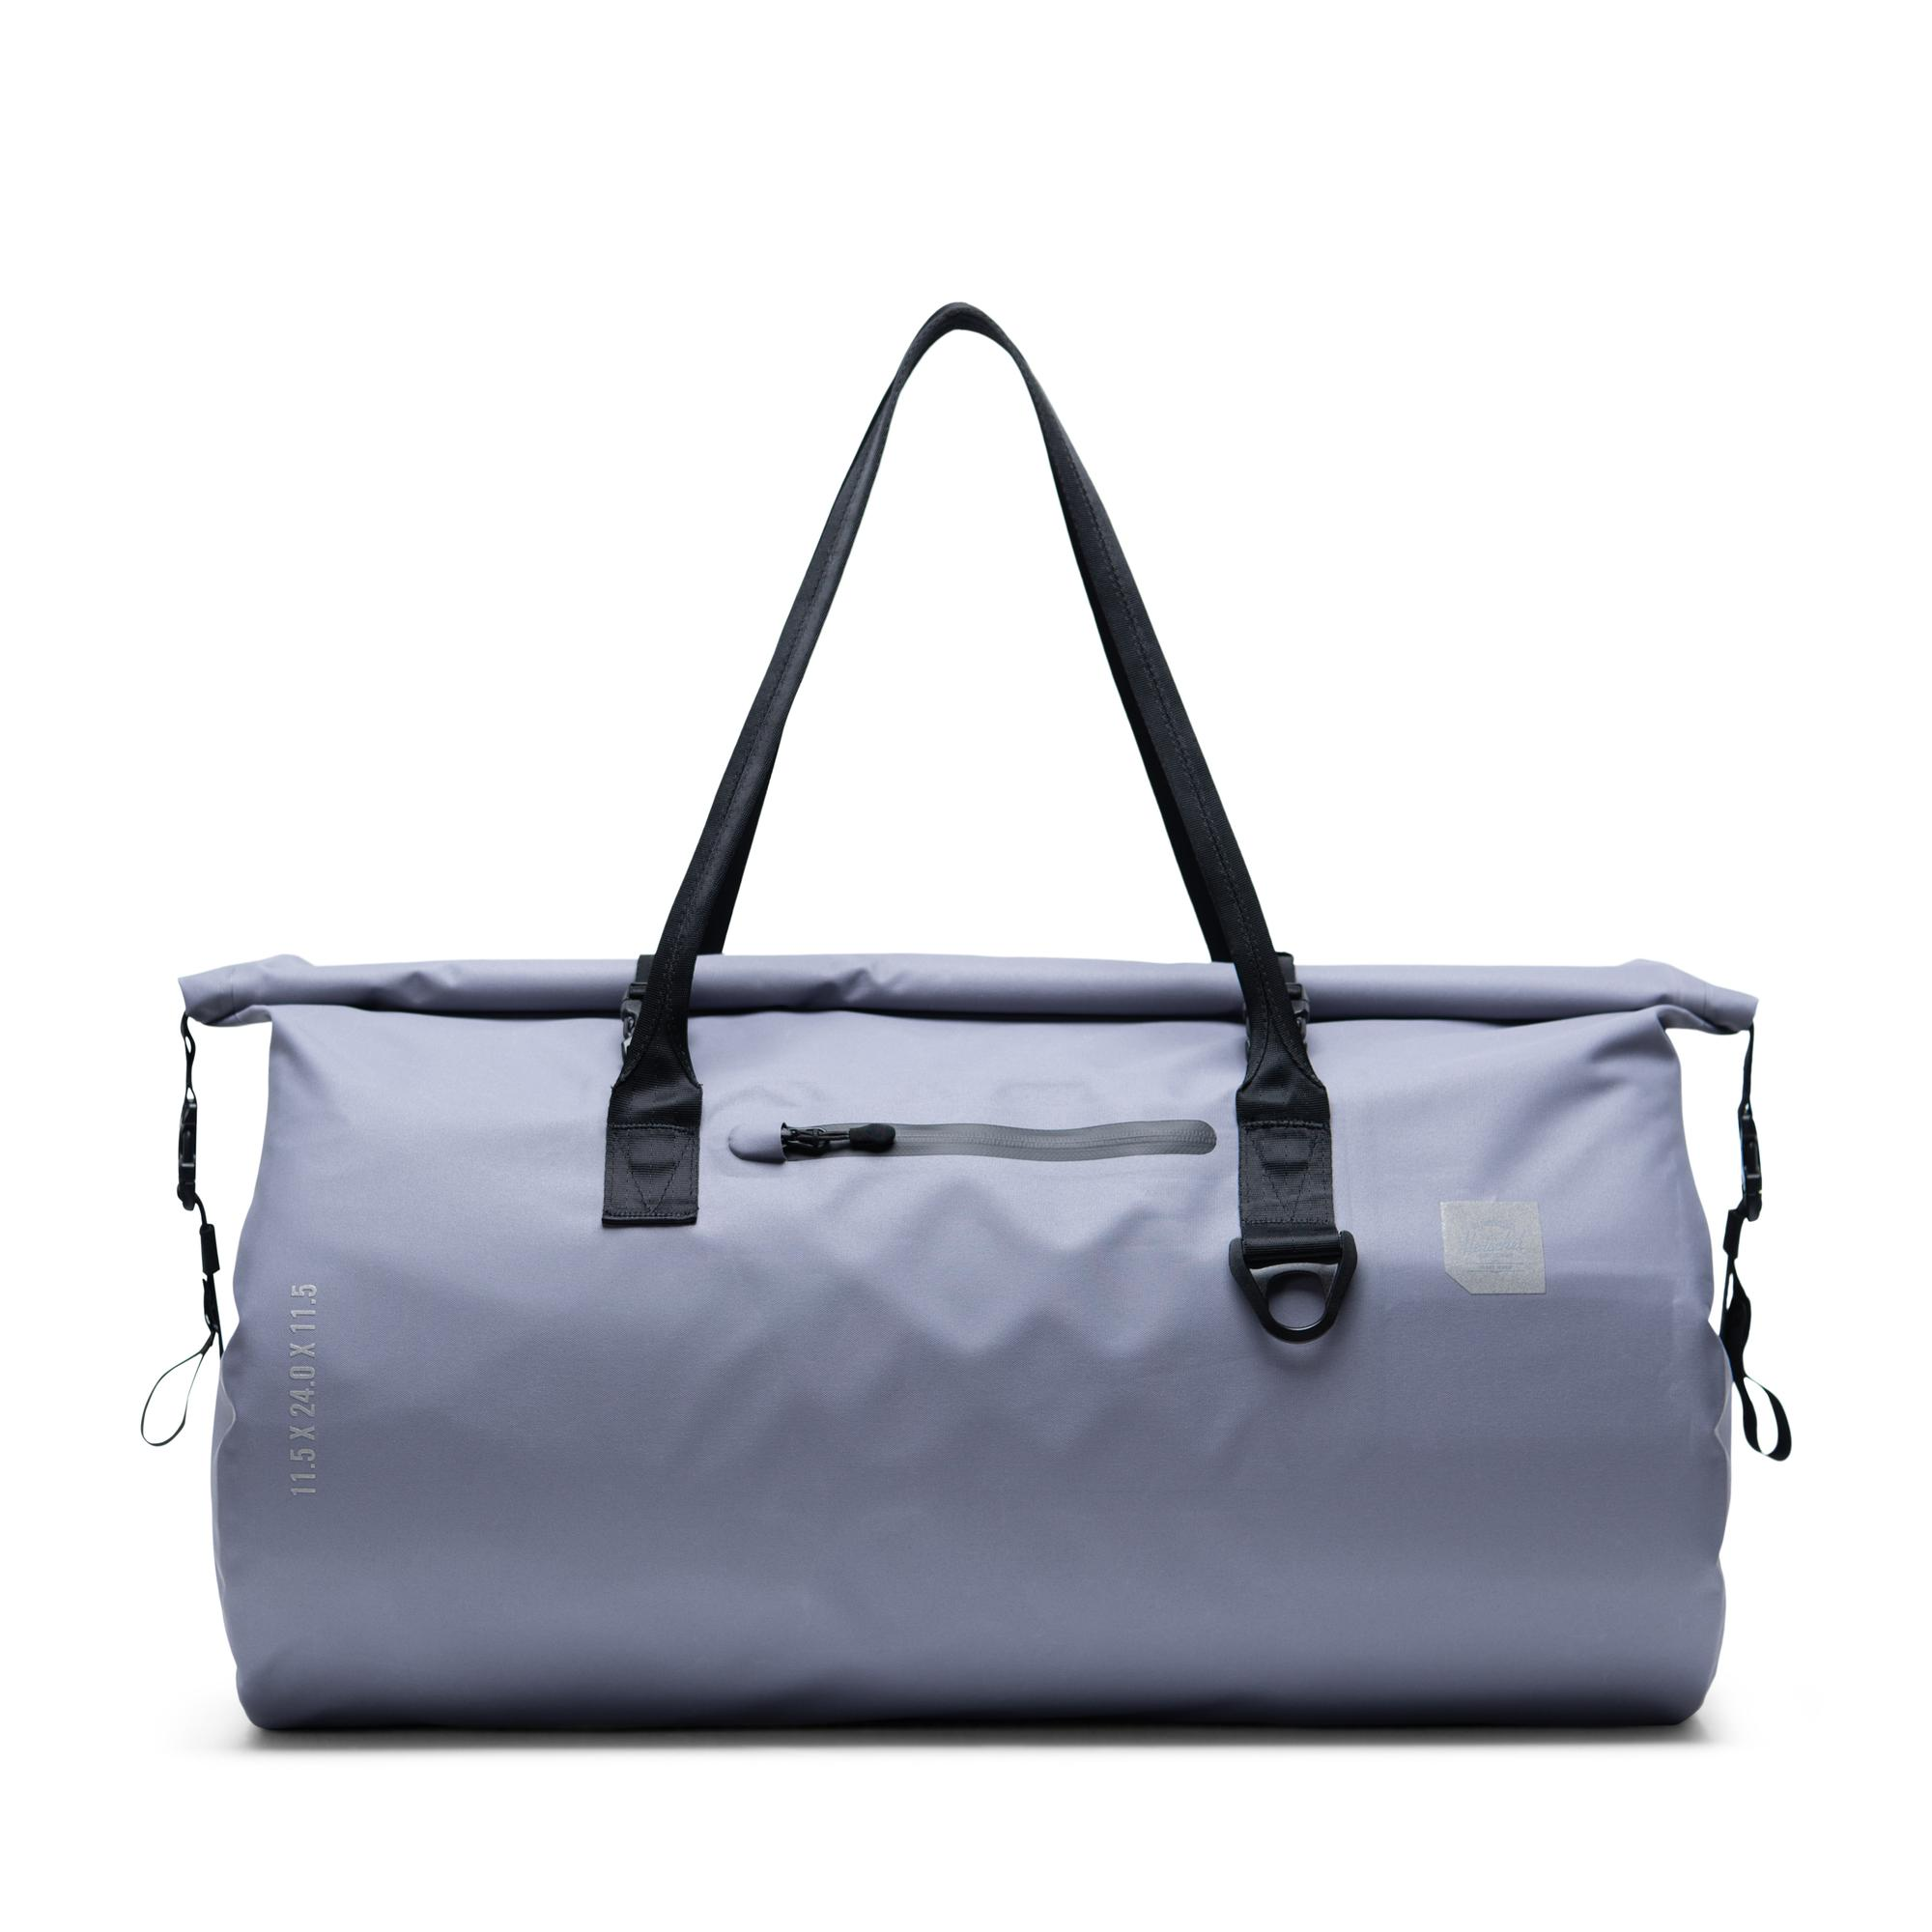 Coast Duffle | Trail by Herschel Supply Co.